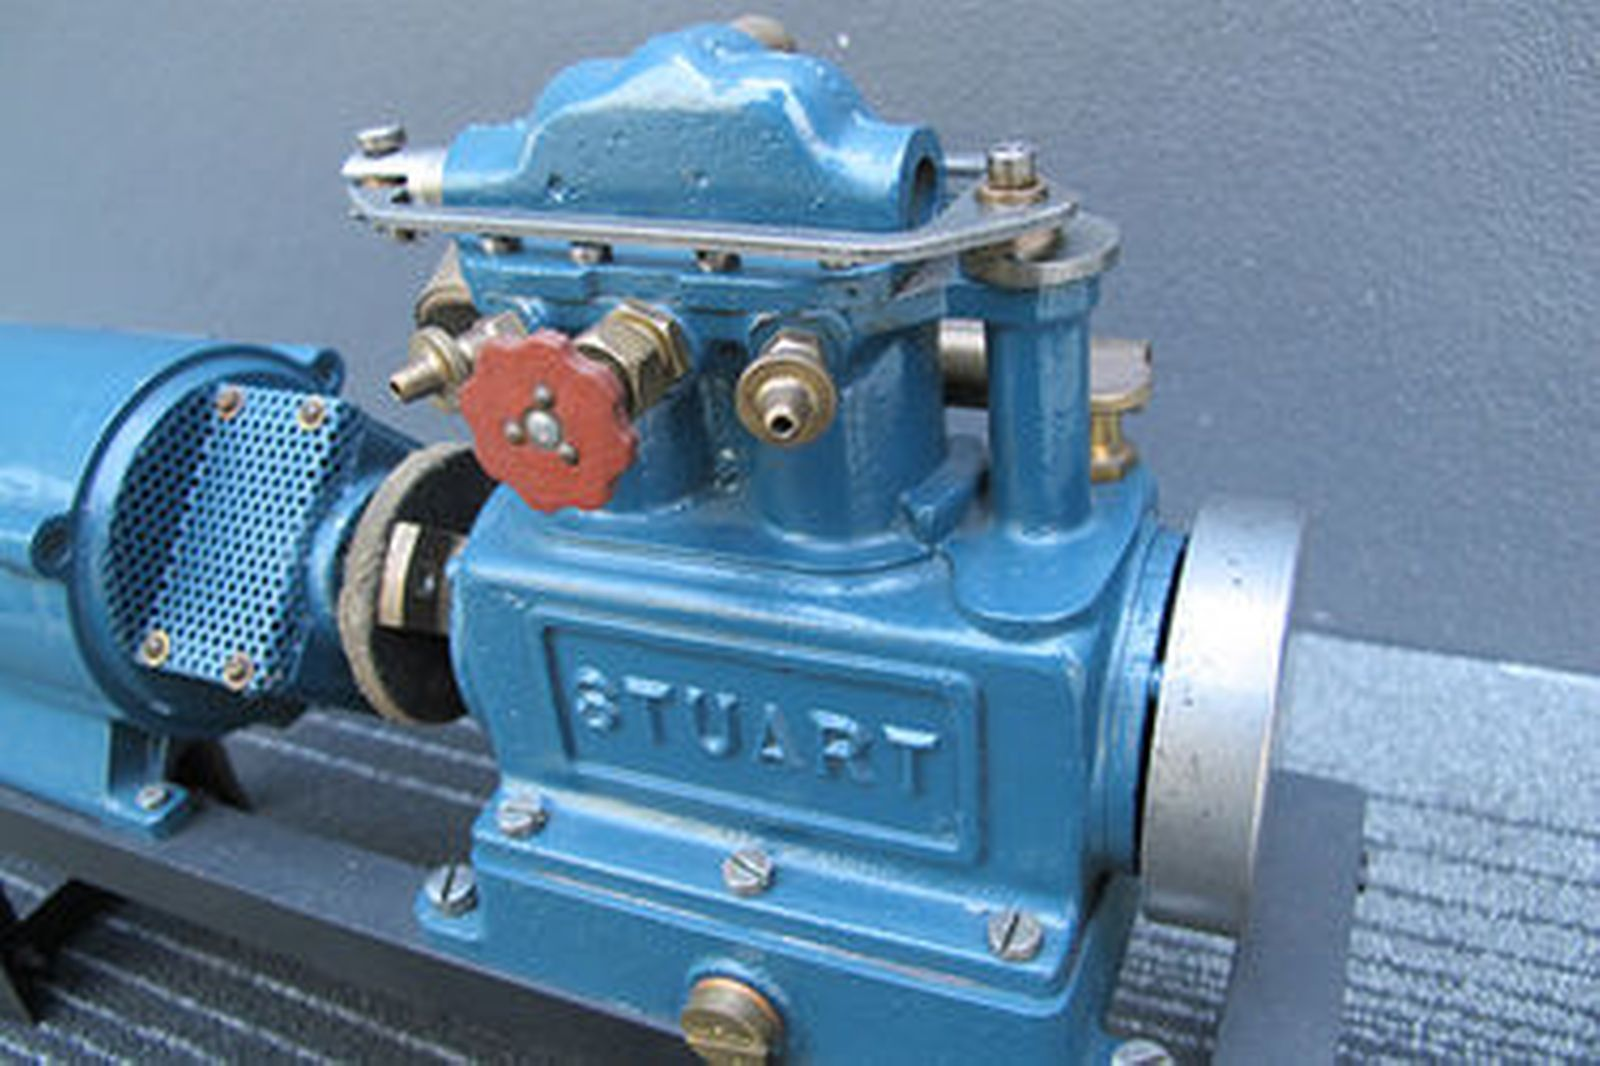 Online Car Auctions >> Sold: Stuart Sirius Model Steam Engine & Generator (37cm ...